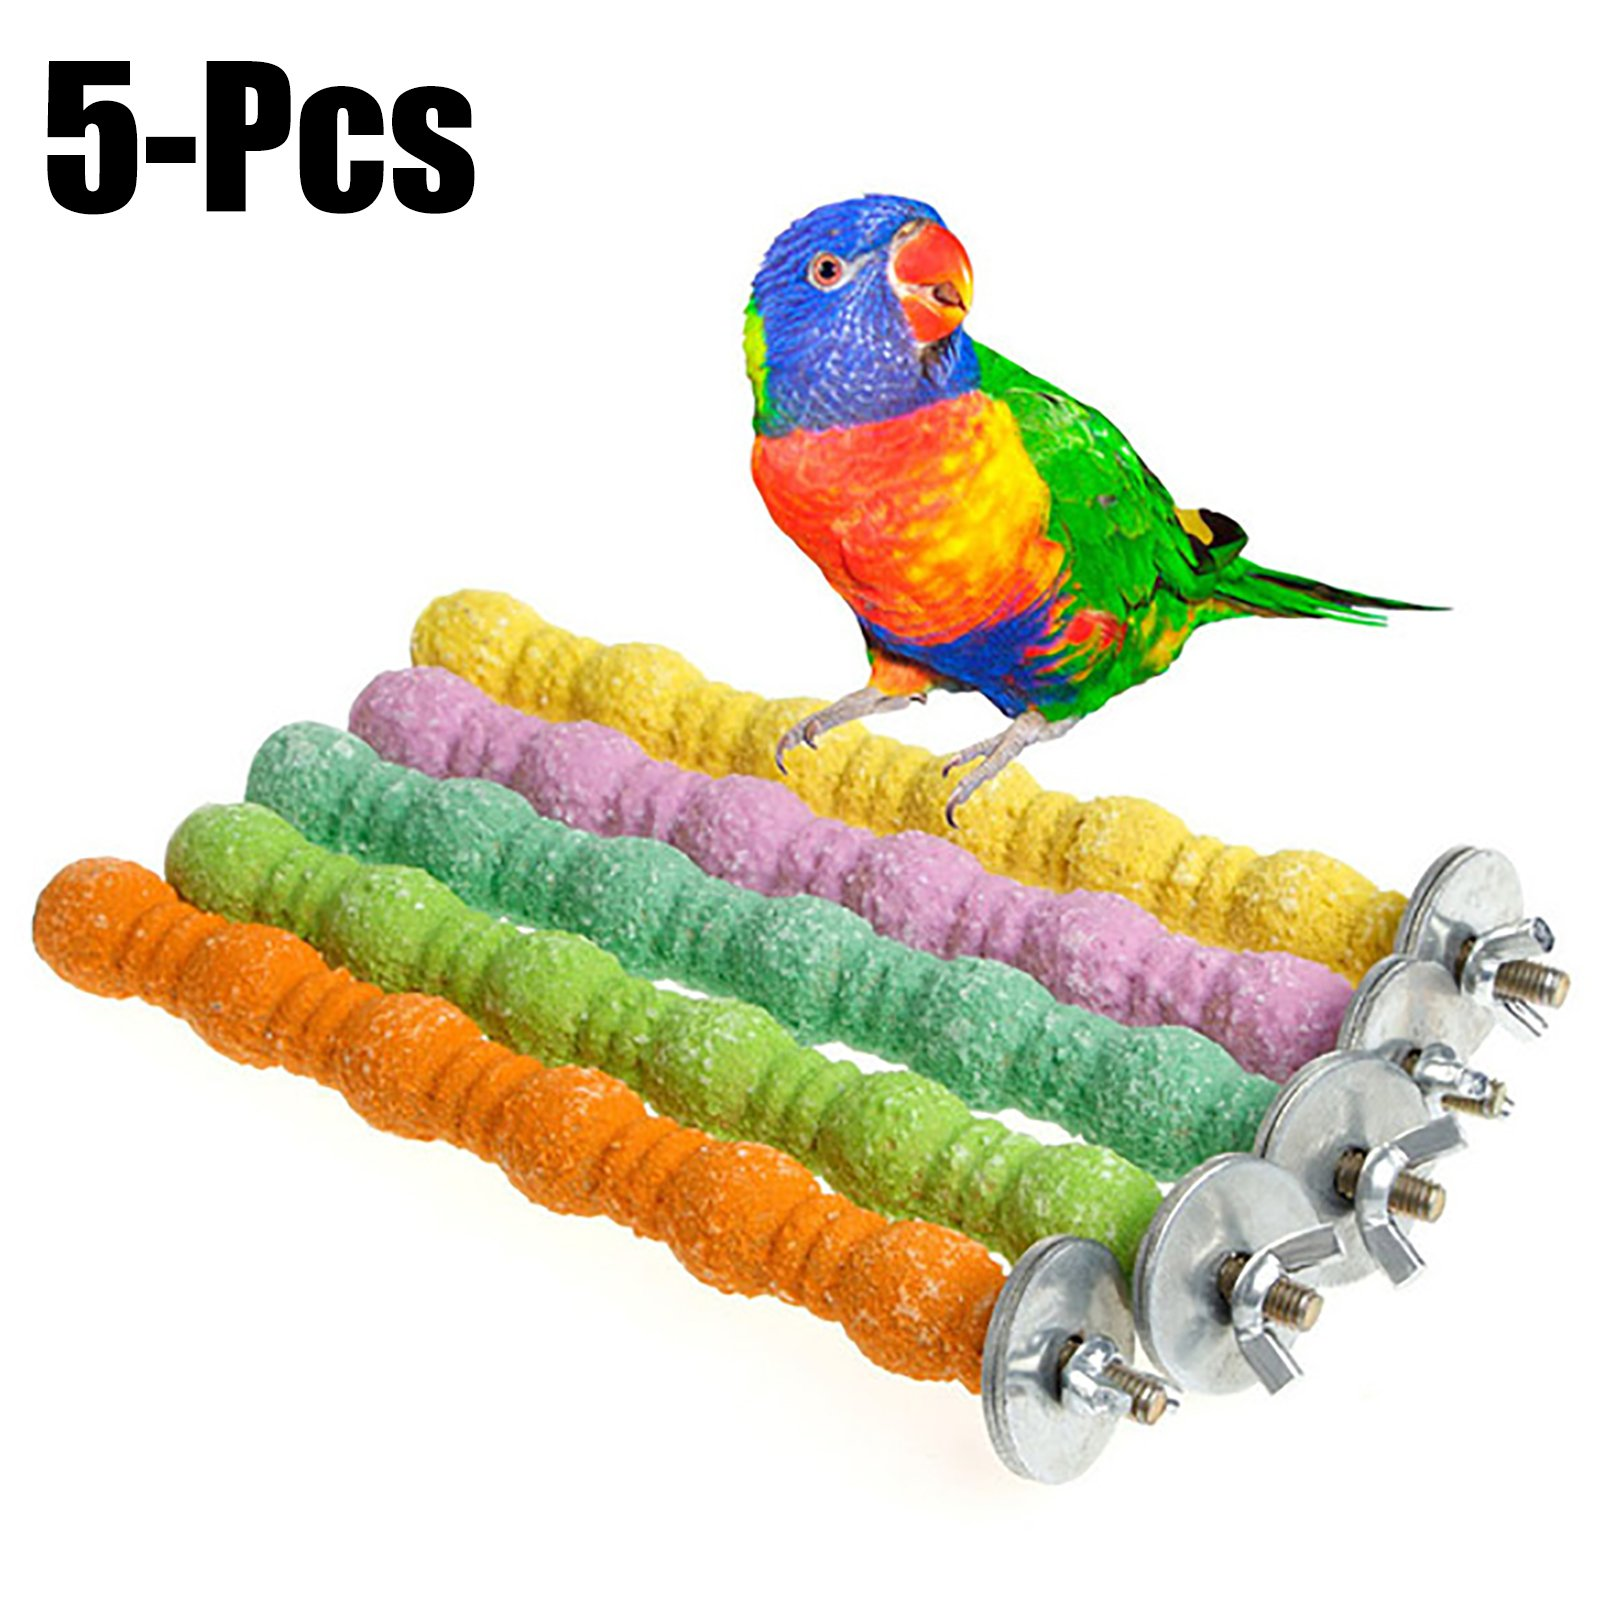 Legendog 5PCS Bird Stand Perches Bird Cage Perches Interactive Bite Resistant Bird Stand Toys Wood Perches(Random Color)